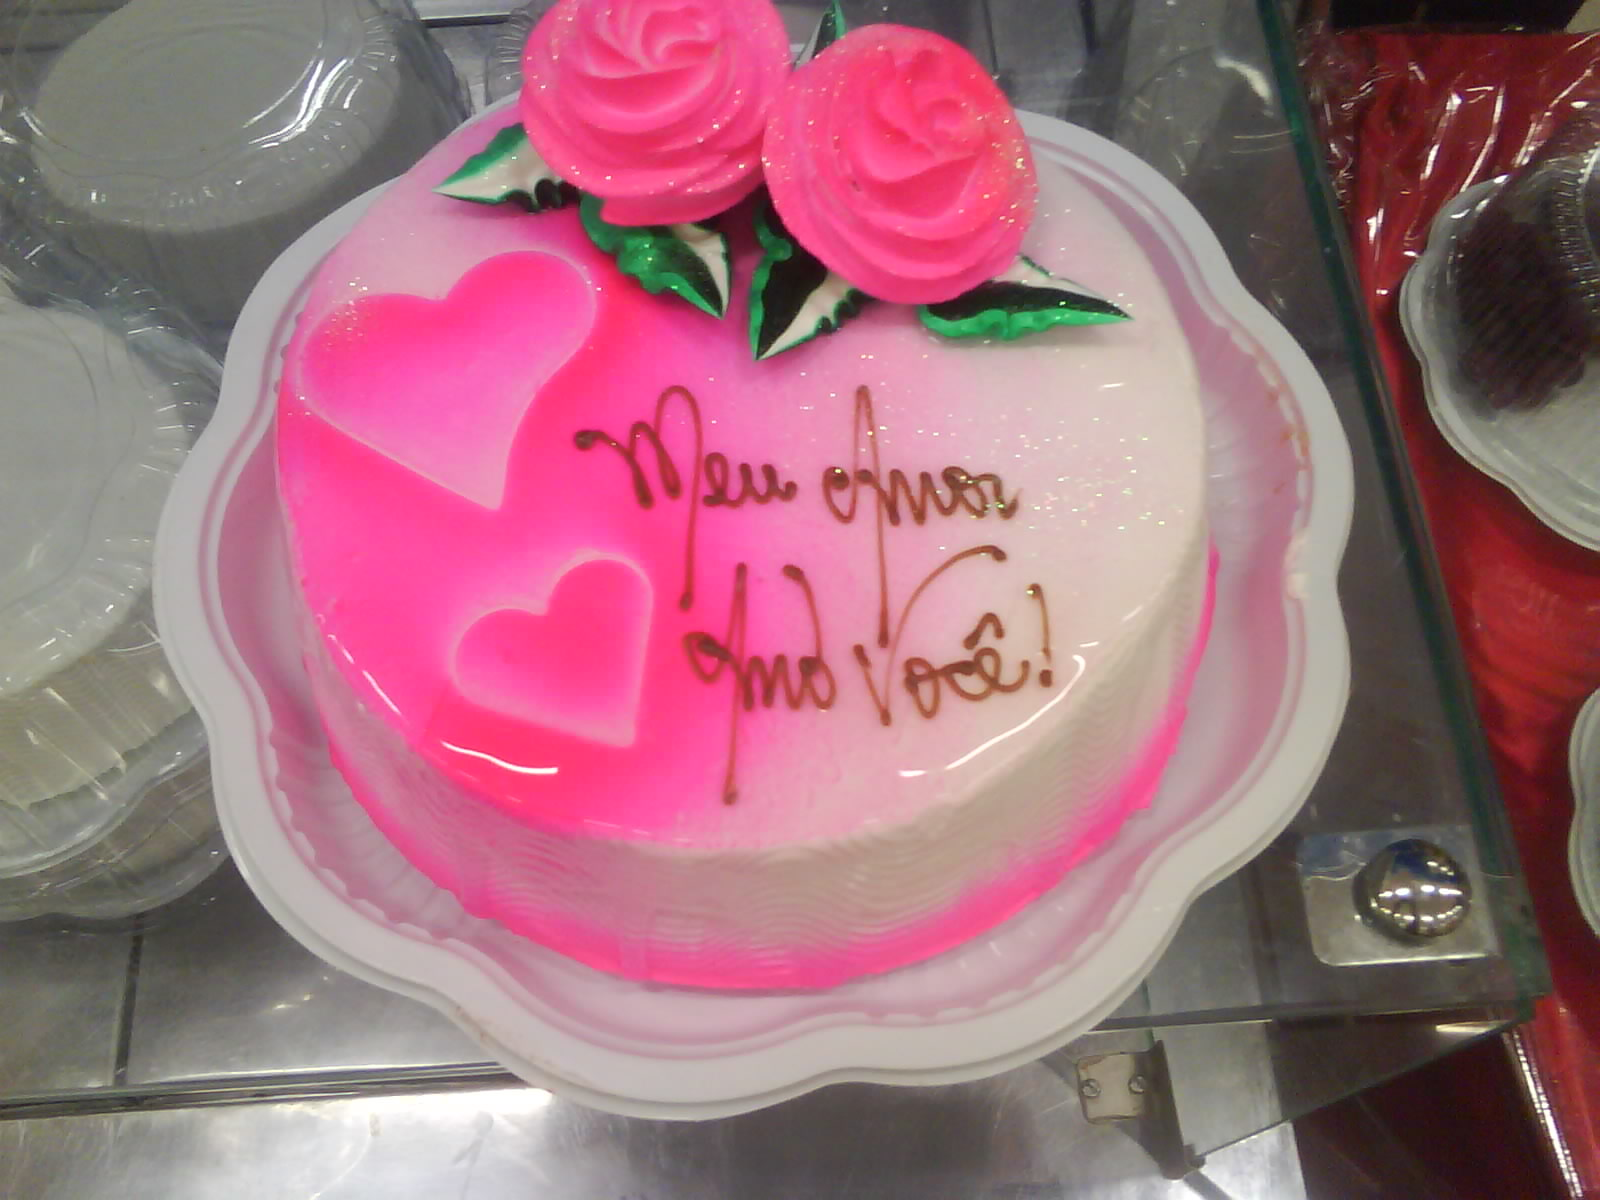 17 Best images about Ana bolos 2016 on Pinterest | Party cakes ...